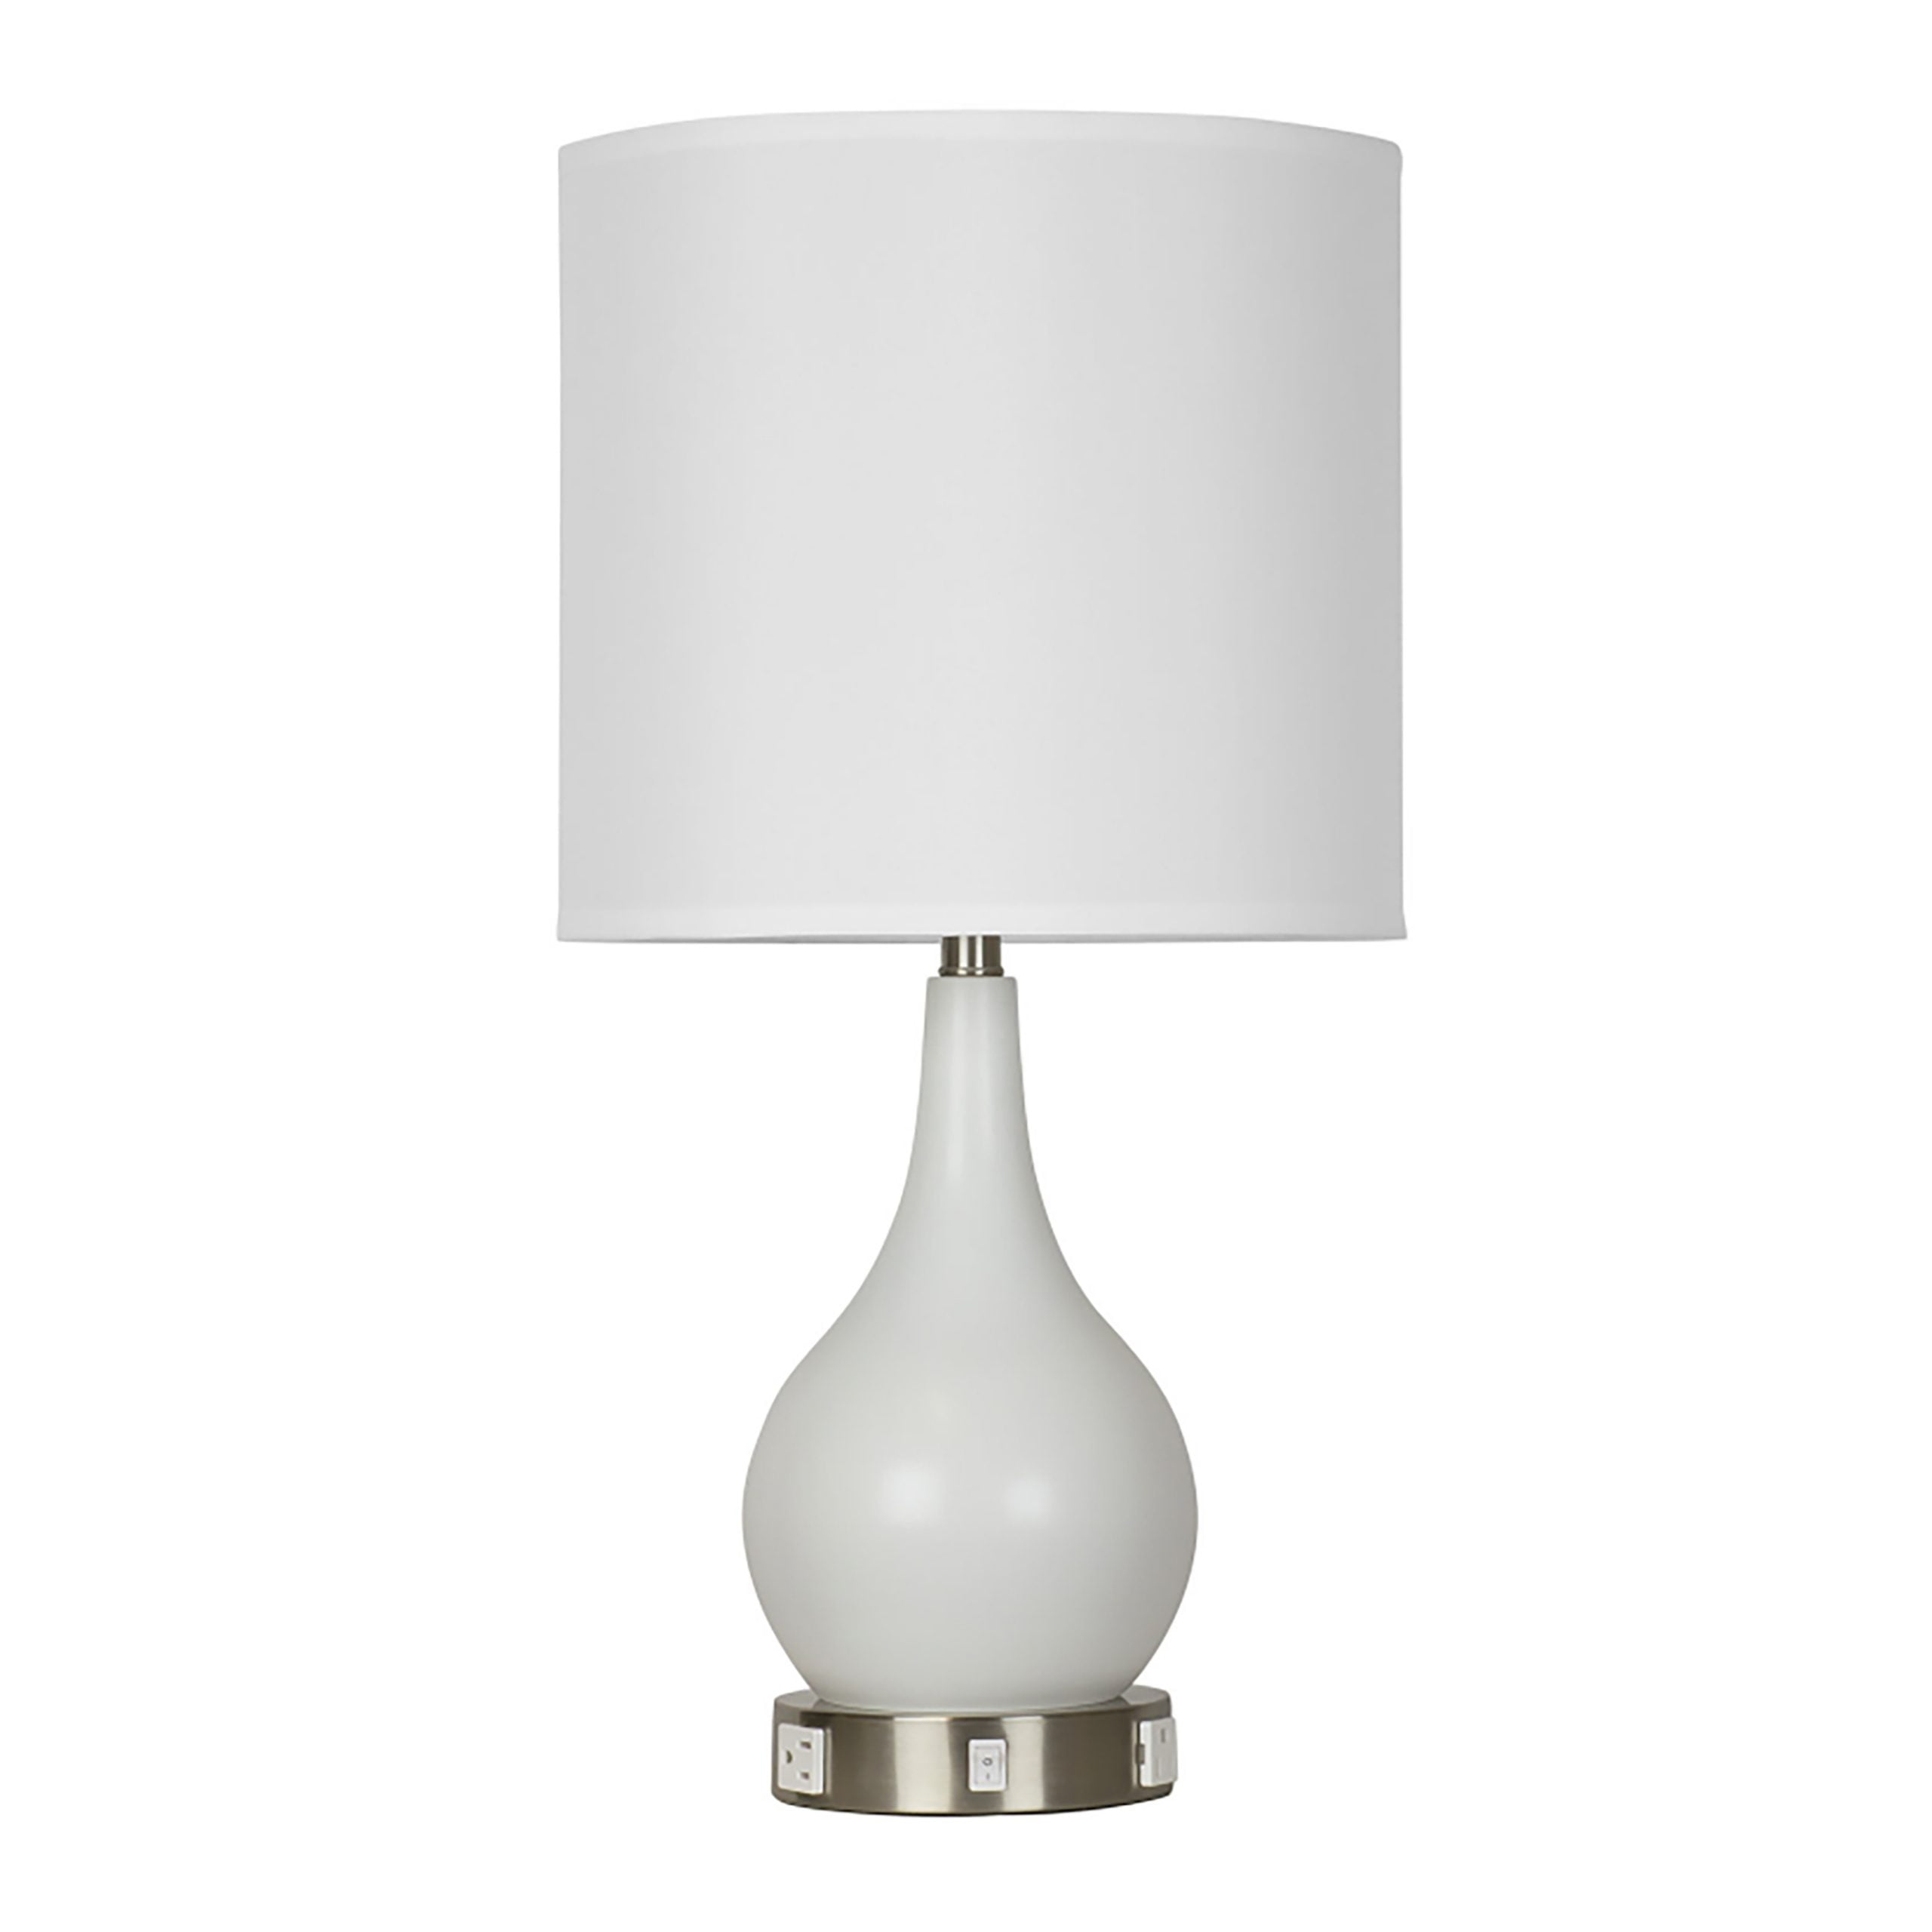 Fountain of Youth Single Table Lamp with 2 Outlets & 1 USB